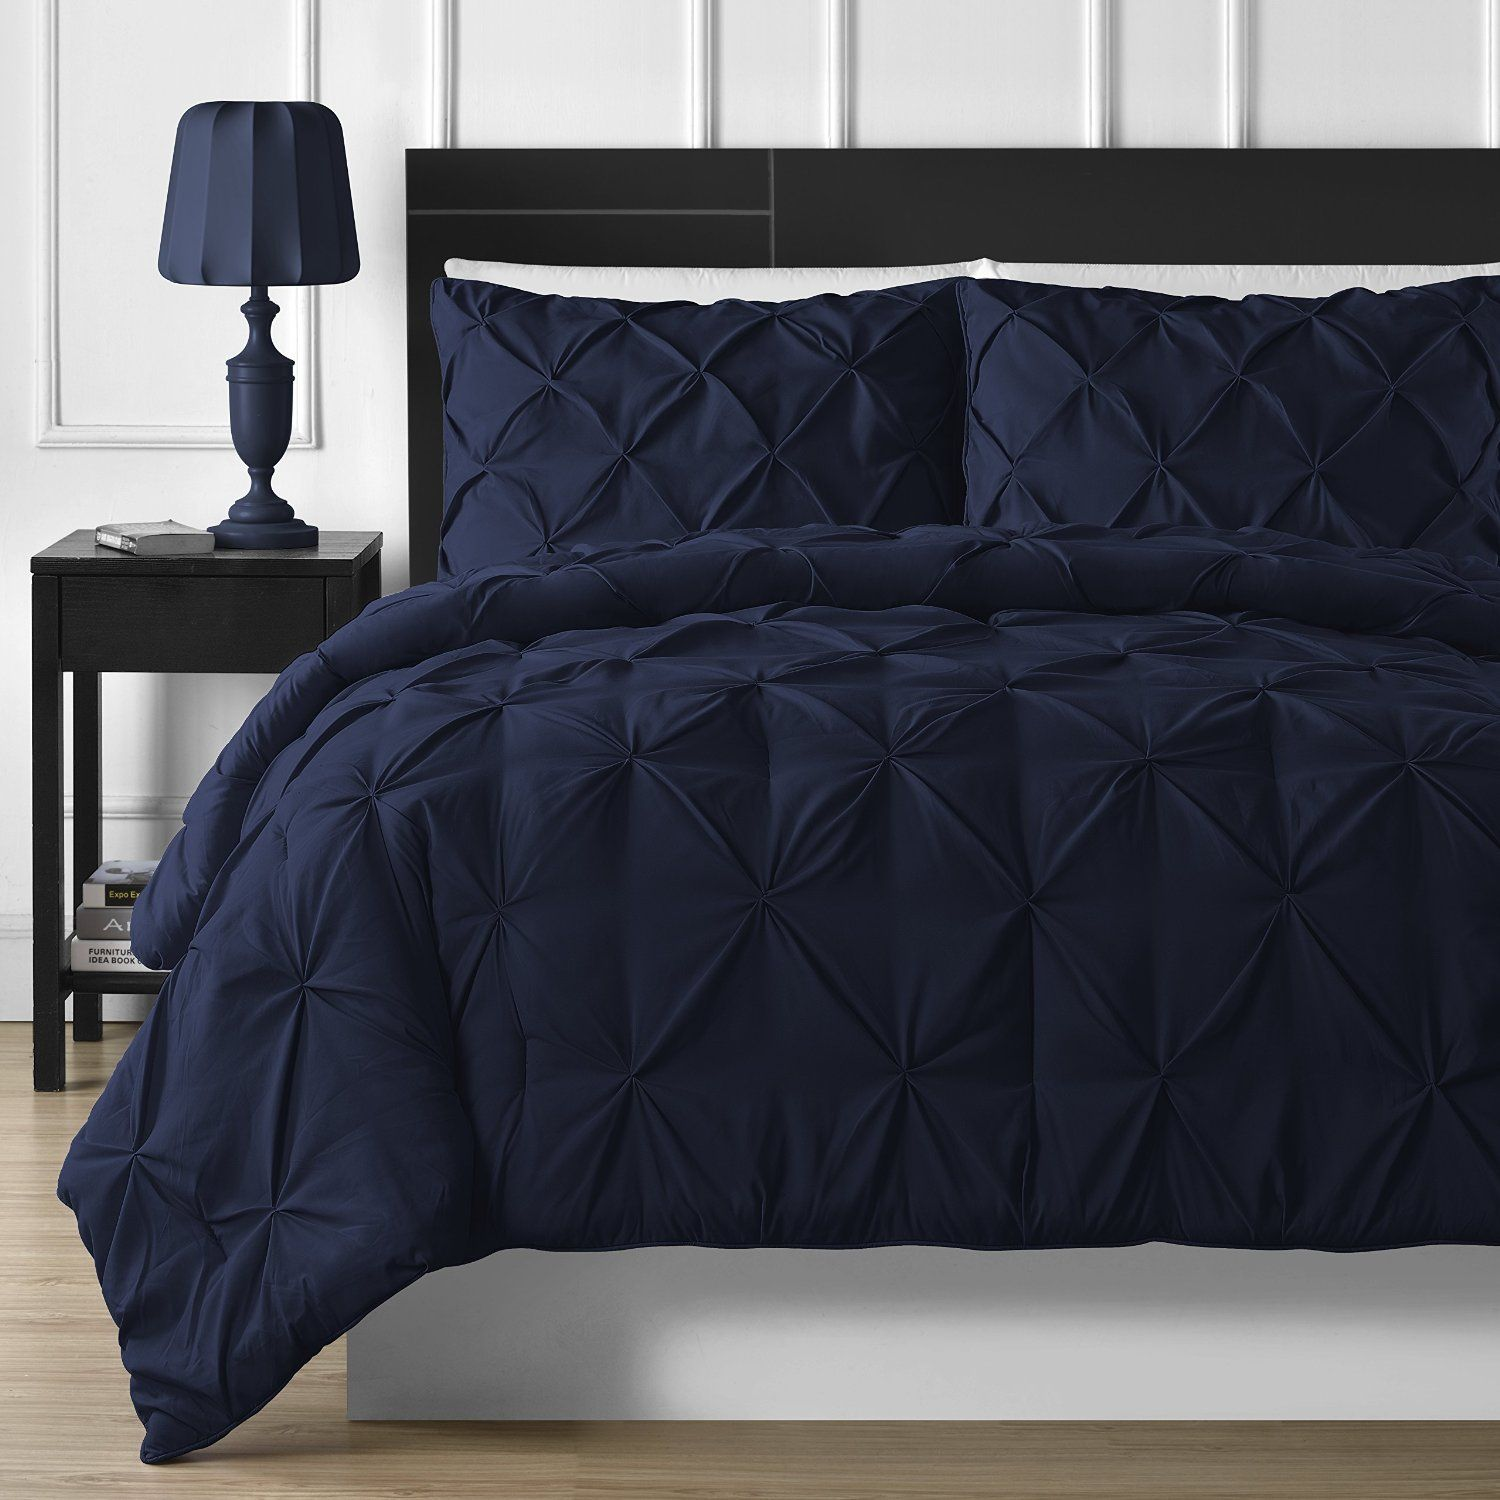 Royal blue bedding queen - P R Bedding 3 Piece Luxurious Pinch Pleat Comforter Set King Navy Blue